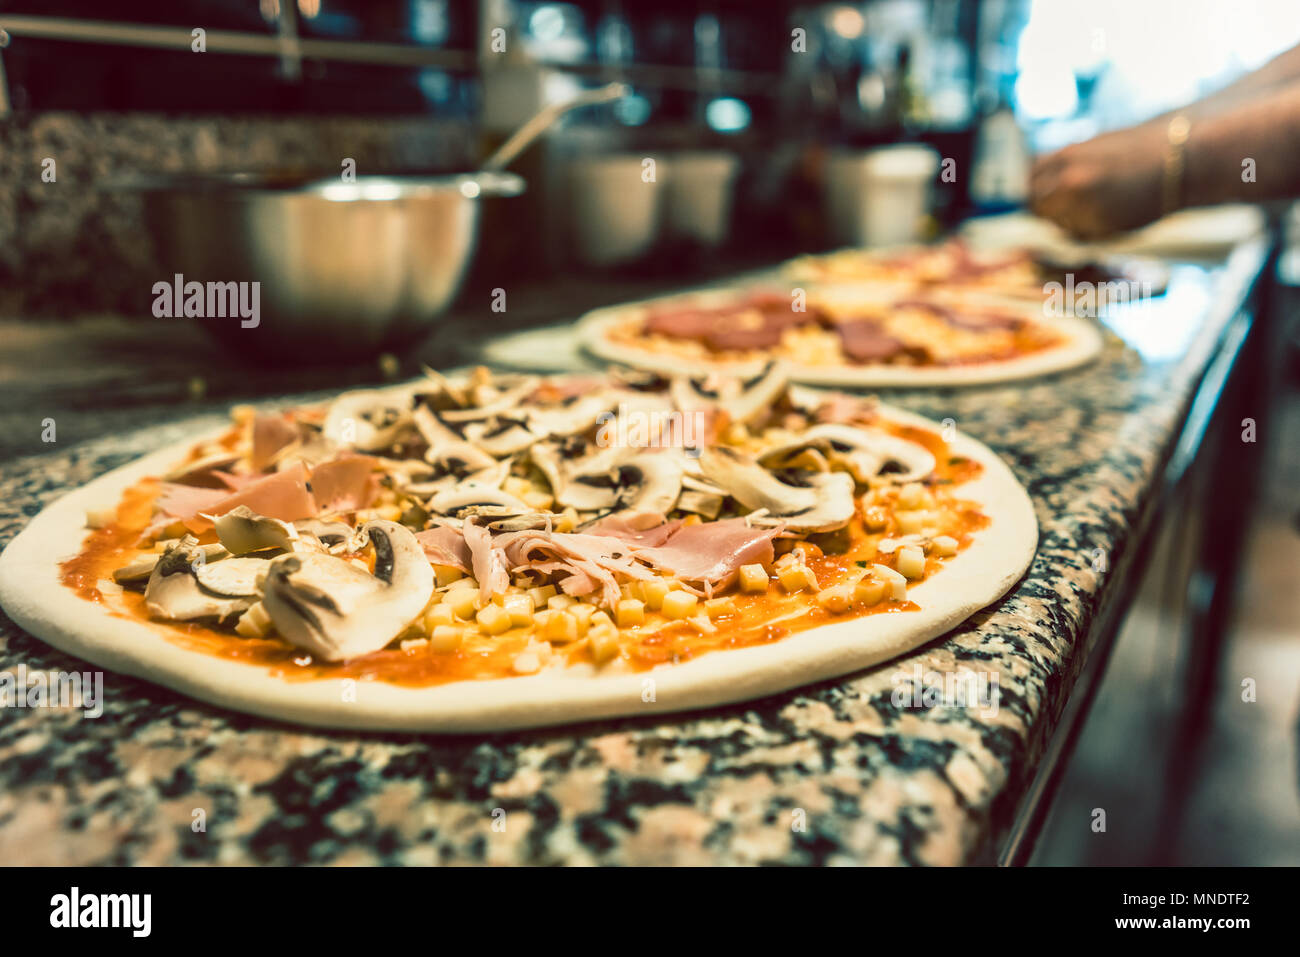 Close-up of unbaked pizza dough topped with mushrooms and prosciutto - Stock Image